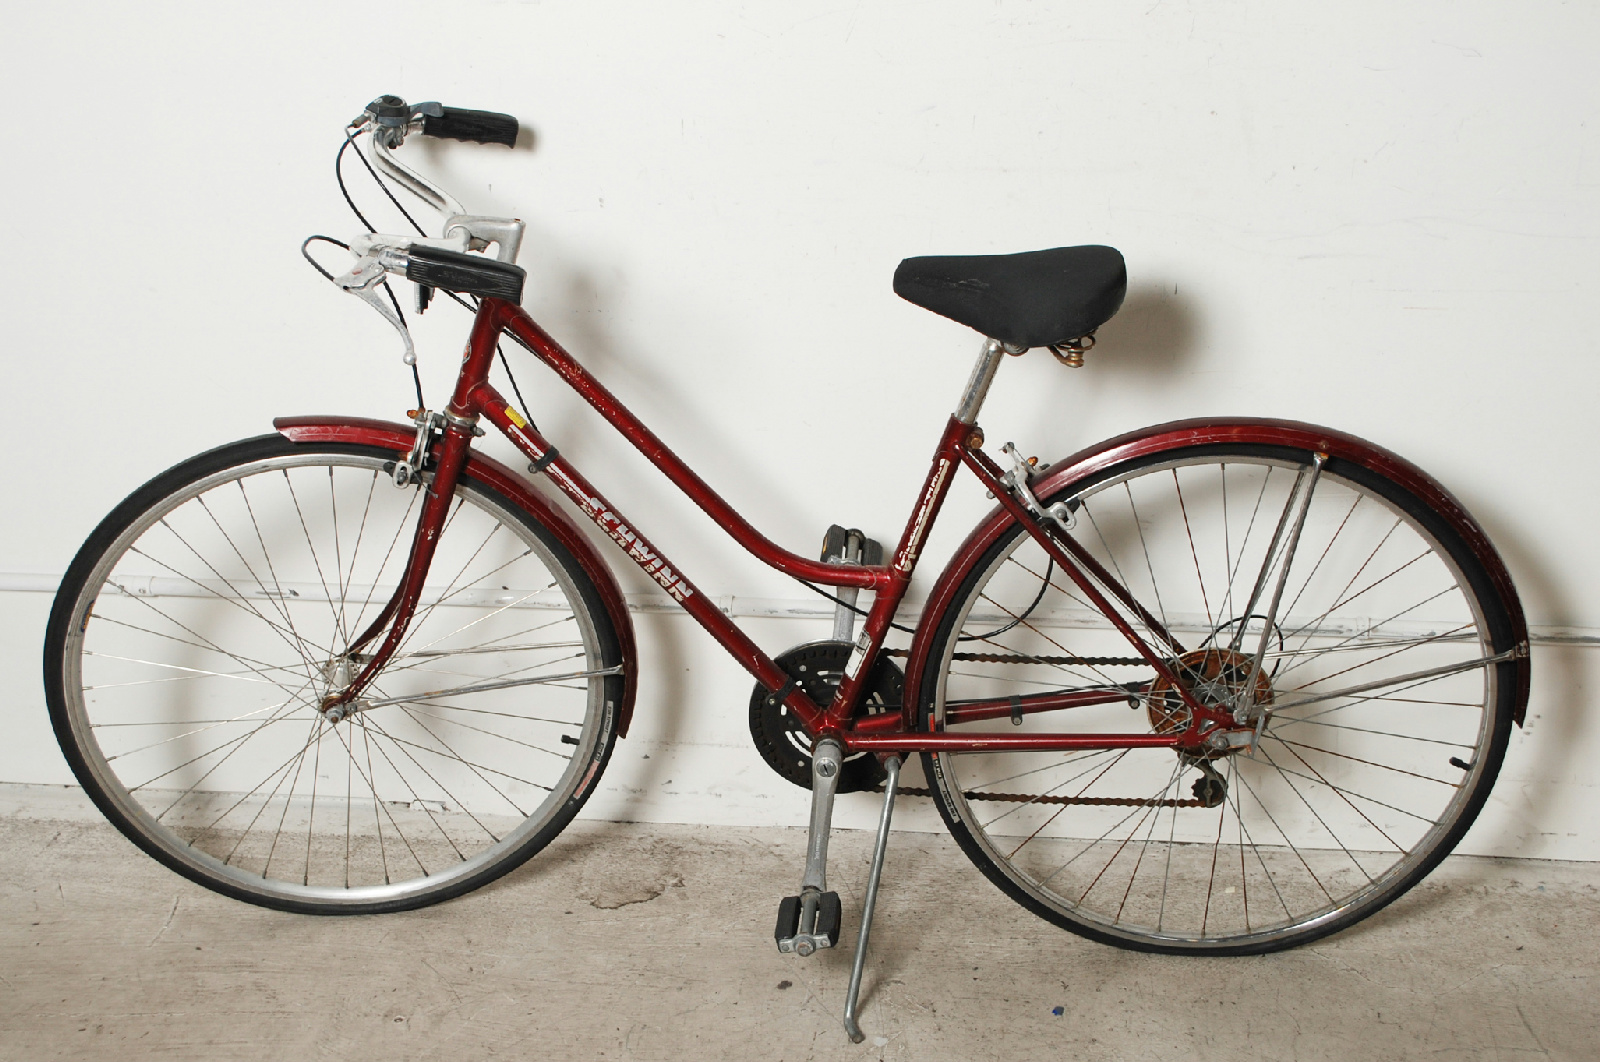 Schwinn Bicycles Tourist Bicycle Sierramichelsslettvet